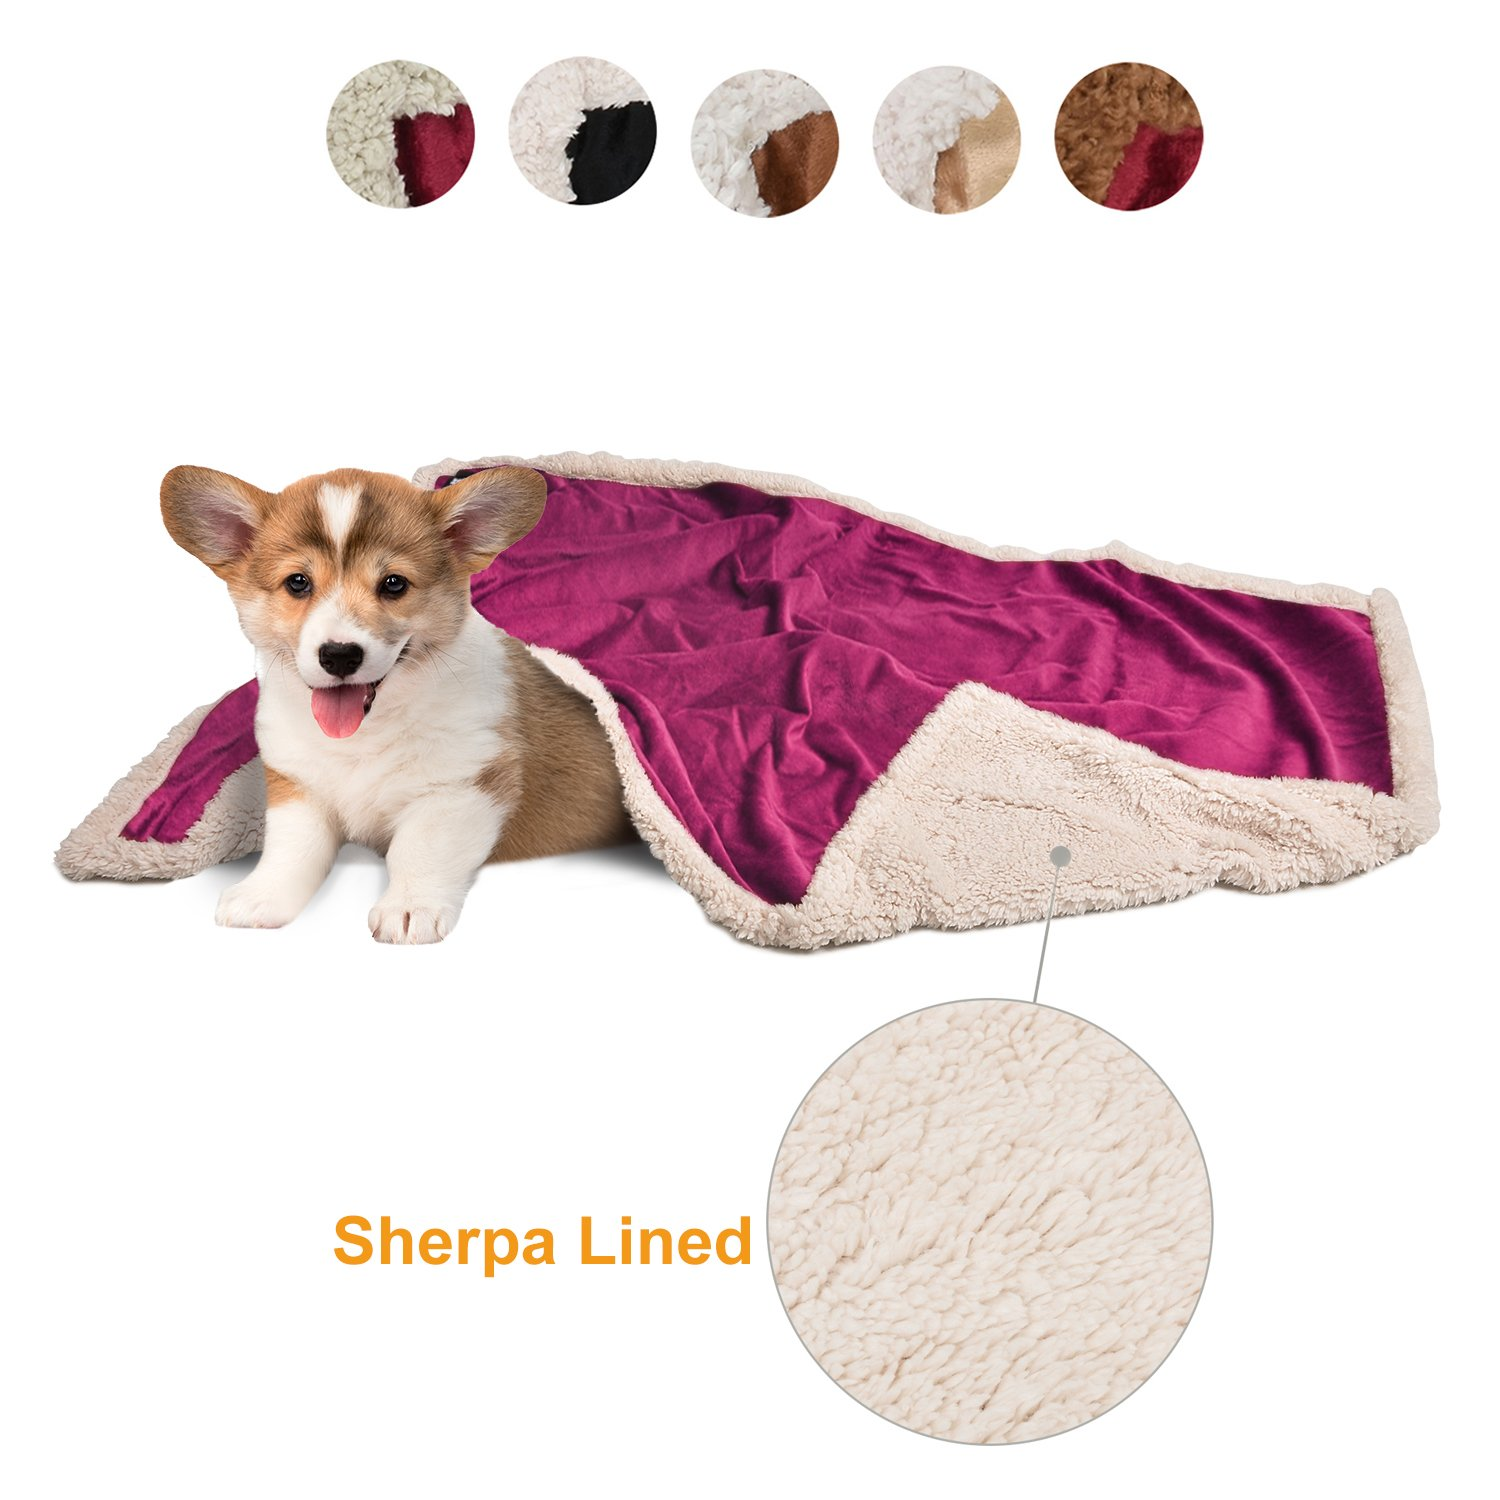 Puppy Blanket,Super Soft Sherpa Dog Blankets and Throws Cat Fleece Sleeping Mat for Pet Small Animals 45x30 Wine